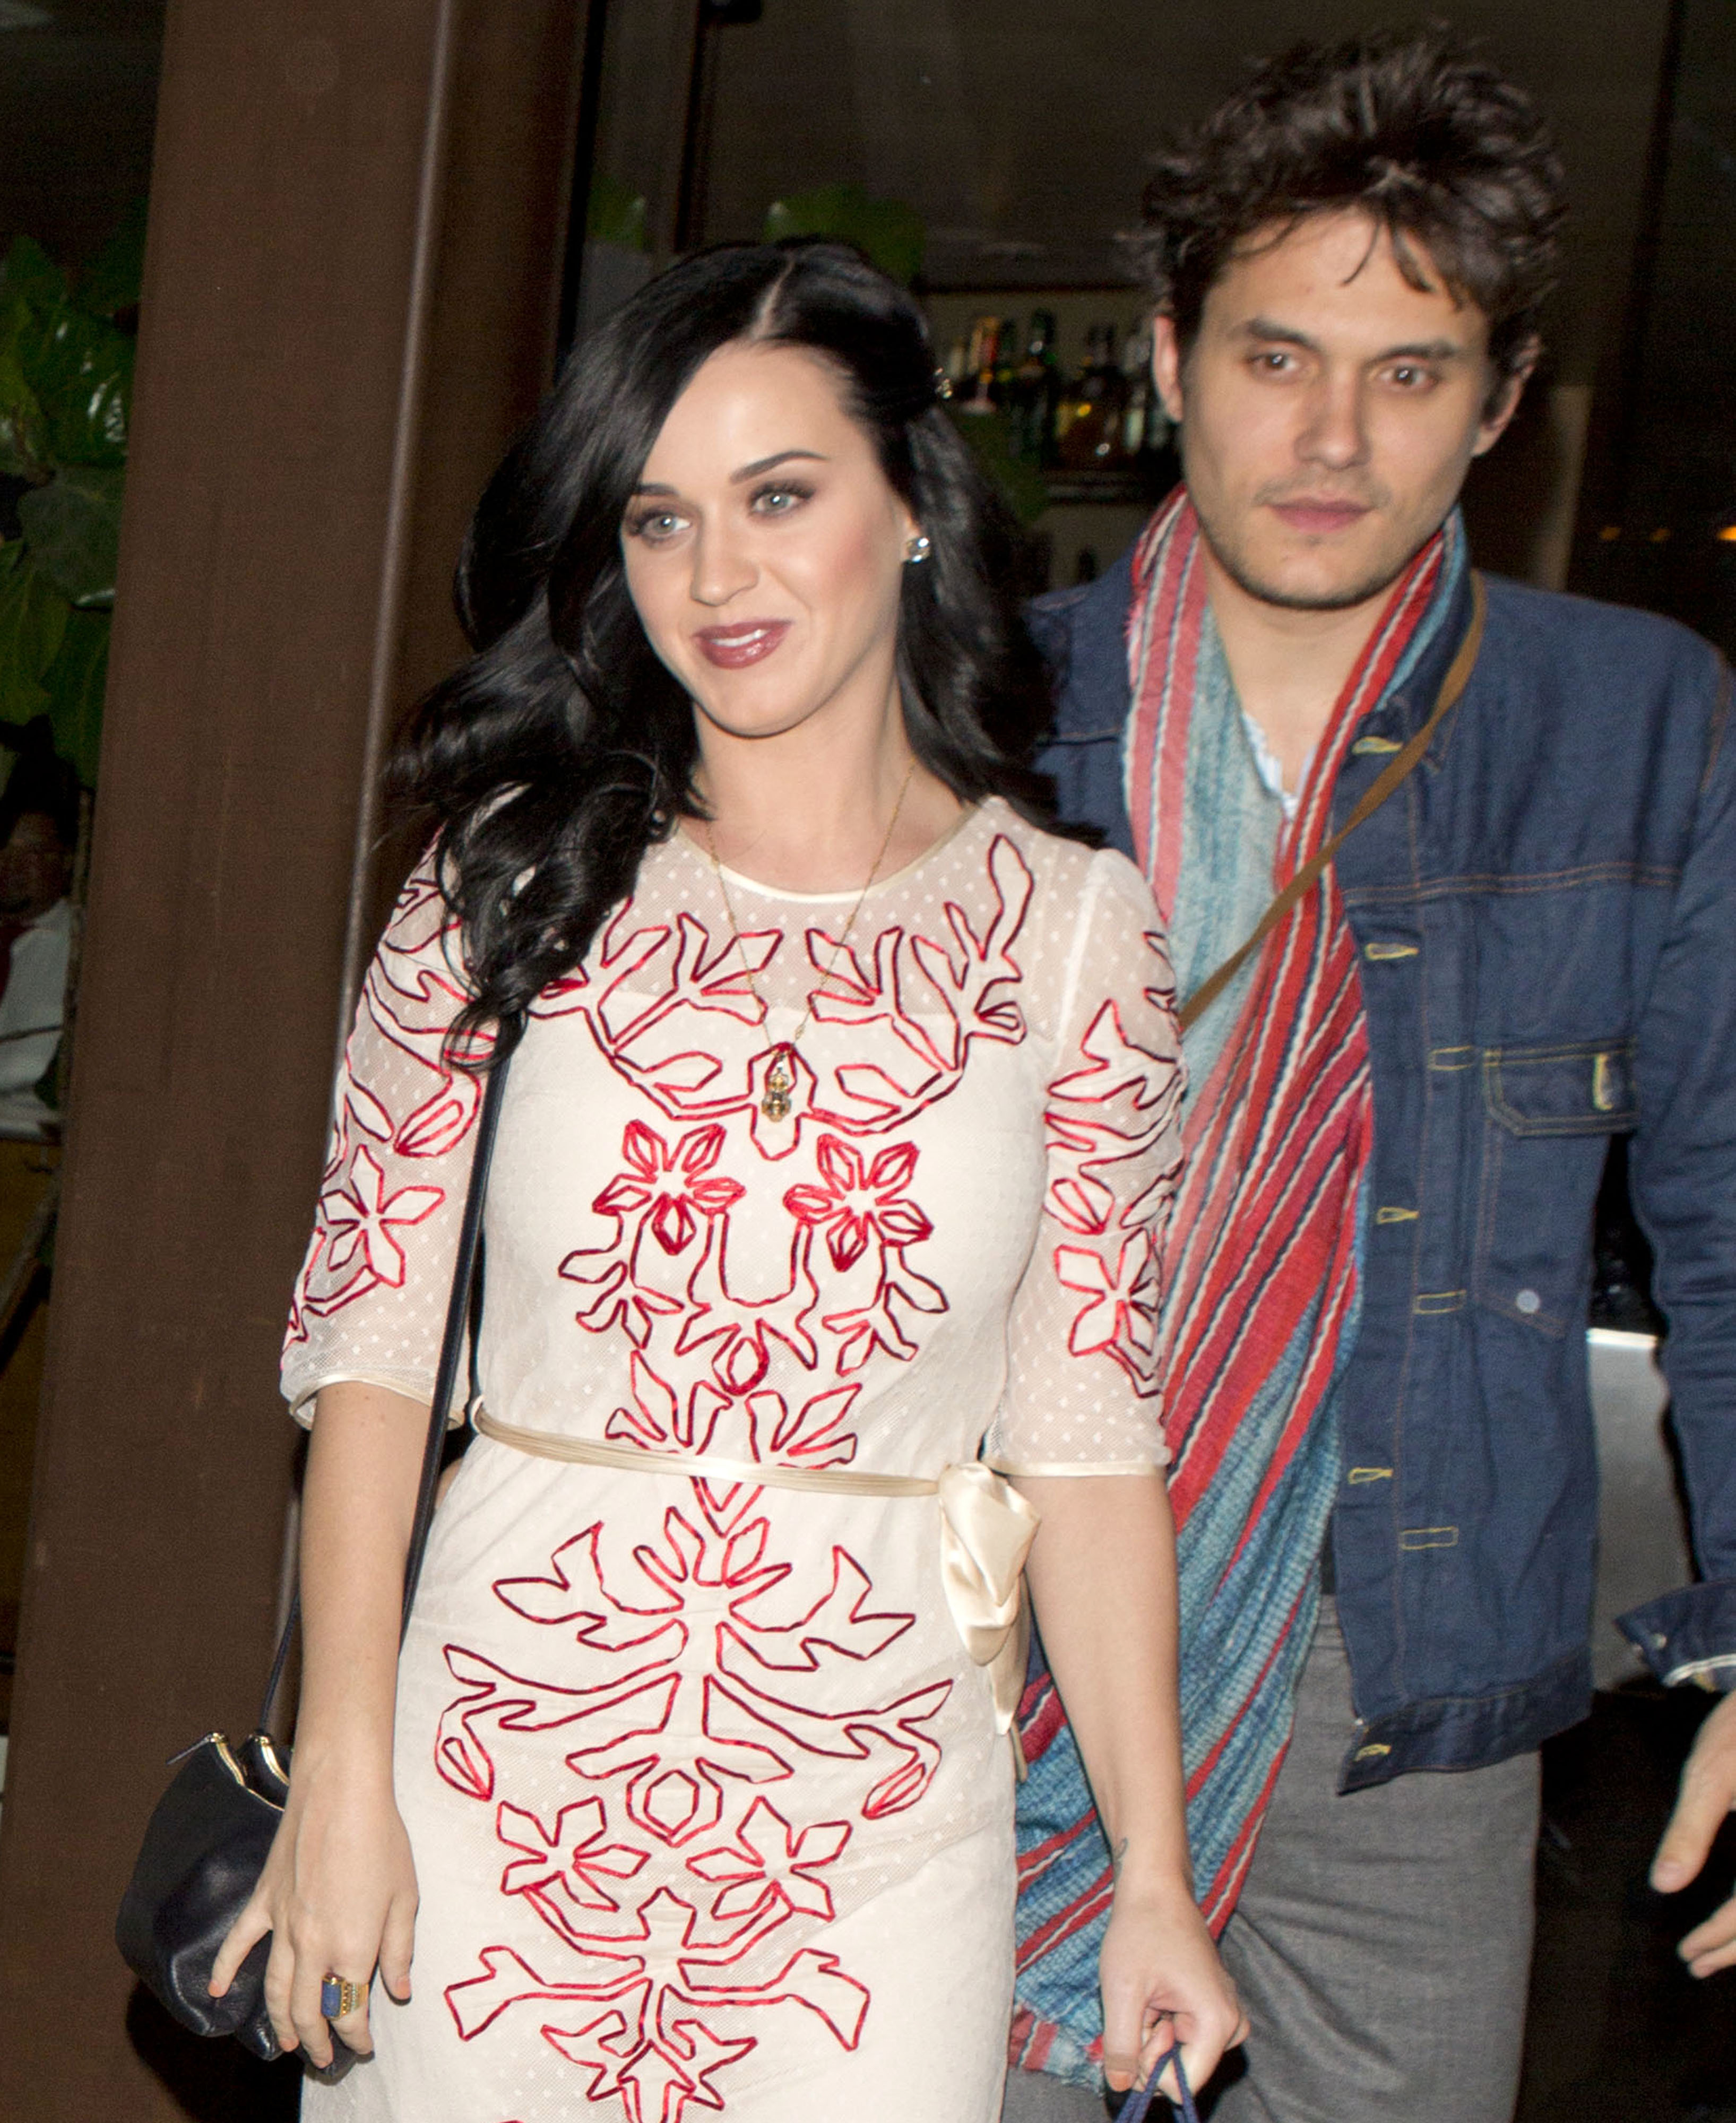 katy perry john mayer wedding ring engagement valentine's day